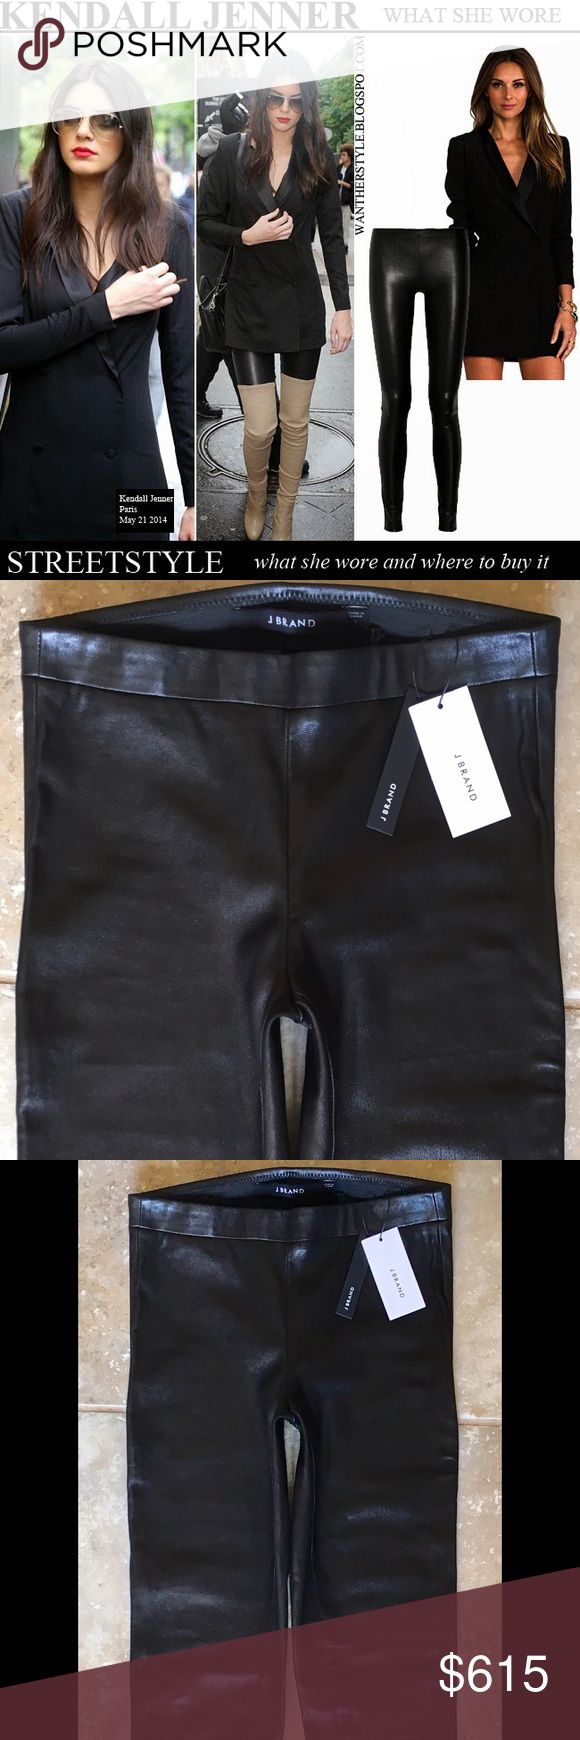 J Brand Edita Pull-Up Leather Legging Sz S Luxury minimalism! Spotted on countless celebs! These sleek leather leggings look just as AMAZING with sneakers as they do with statement blouses & stilettos! Feature a simple pull-on style, an elastic waistband, and hi-sheen stretch leather. Sooooo CHIC! BNWT!! J Brand Pants Leggings